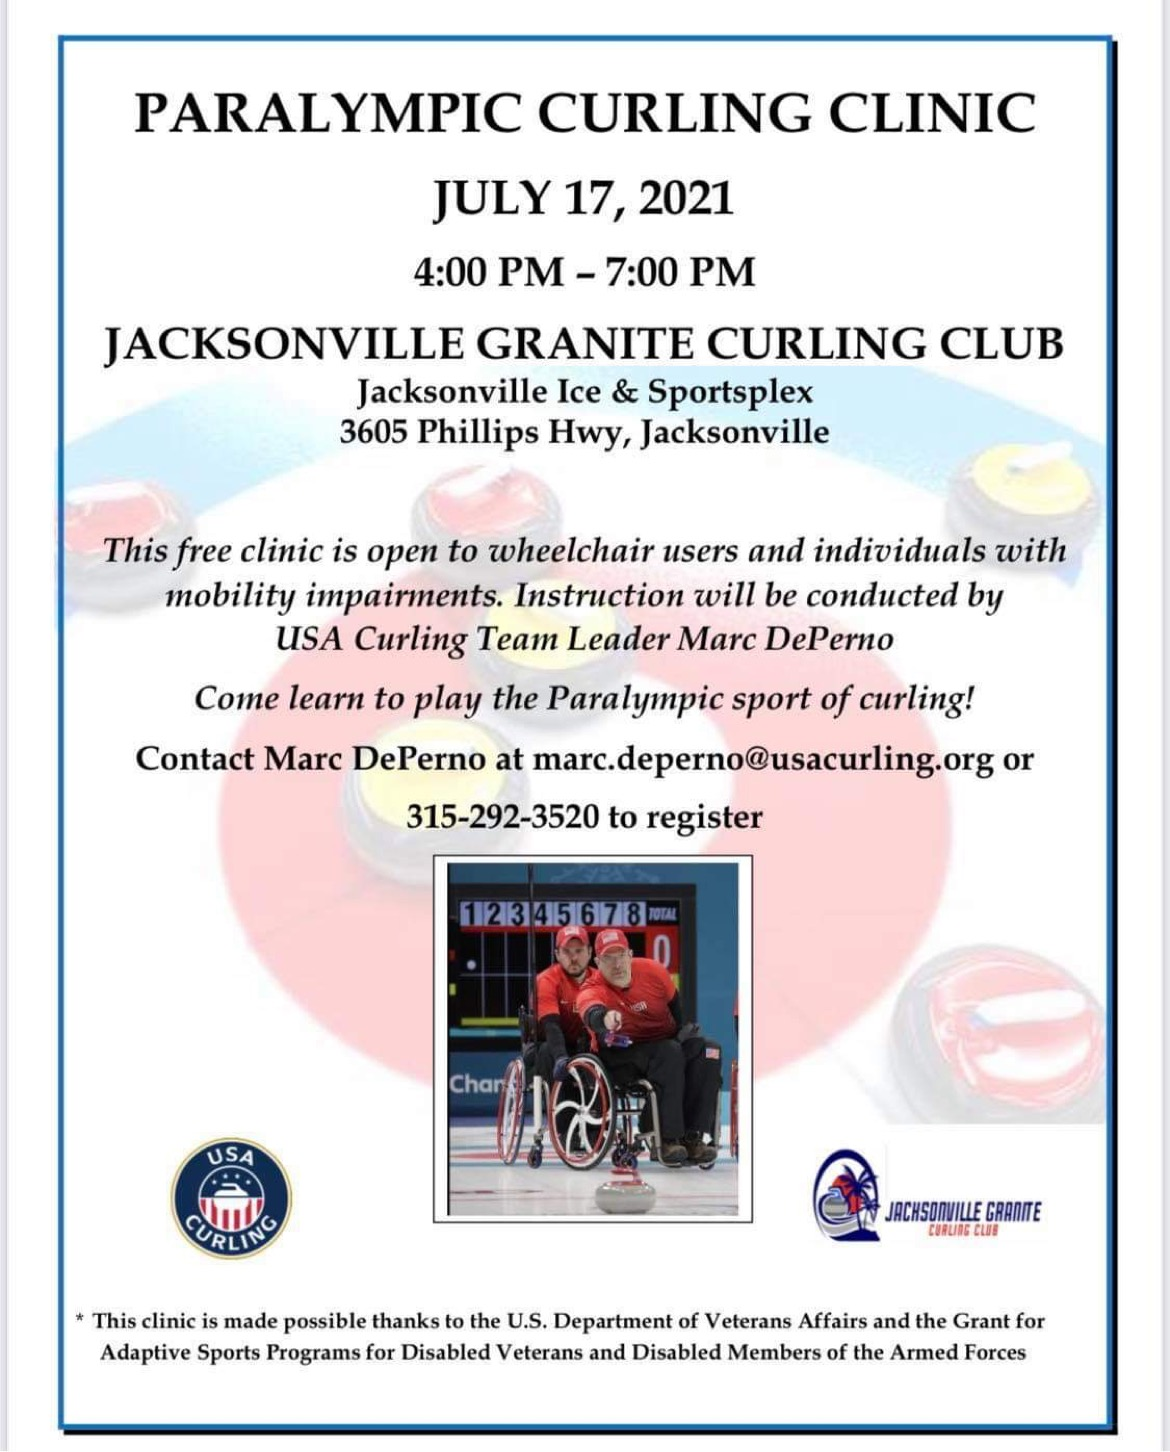 USA Curling Event